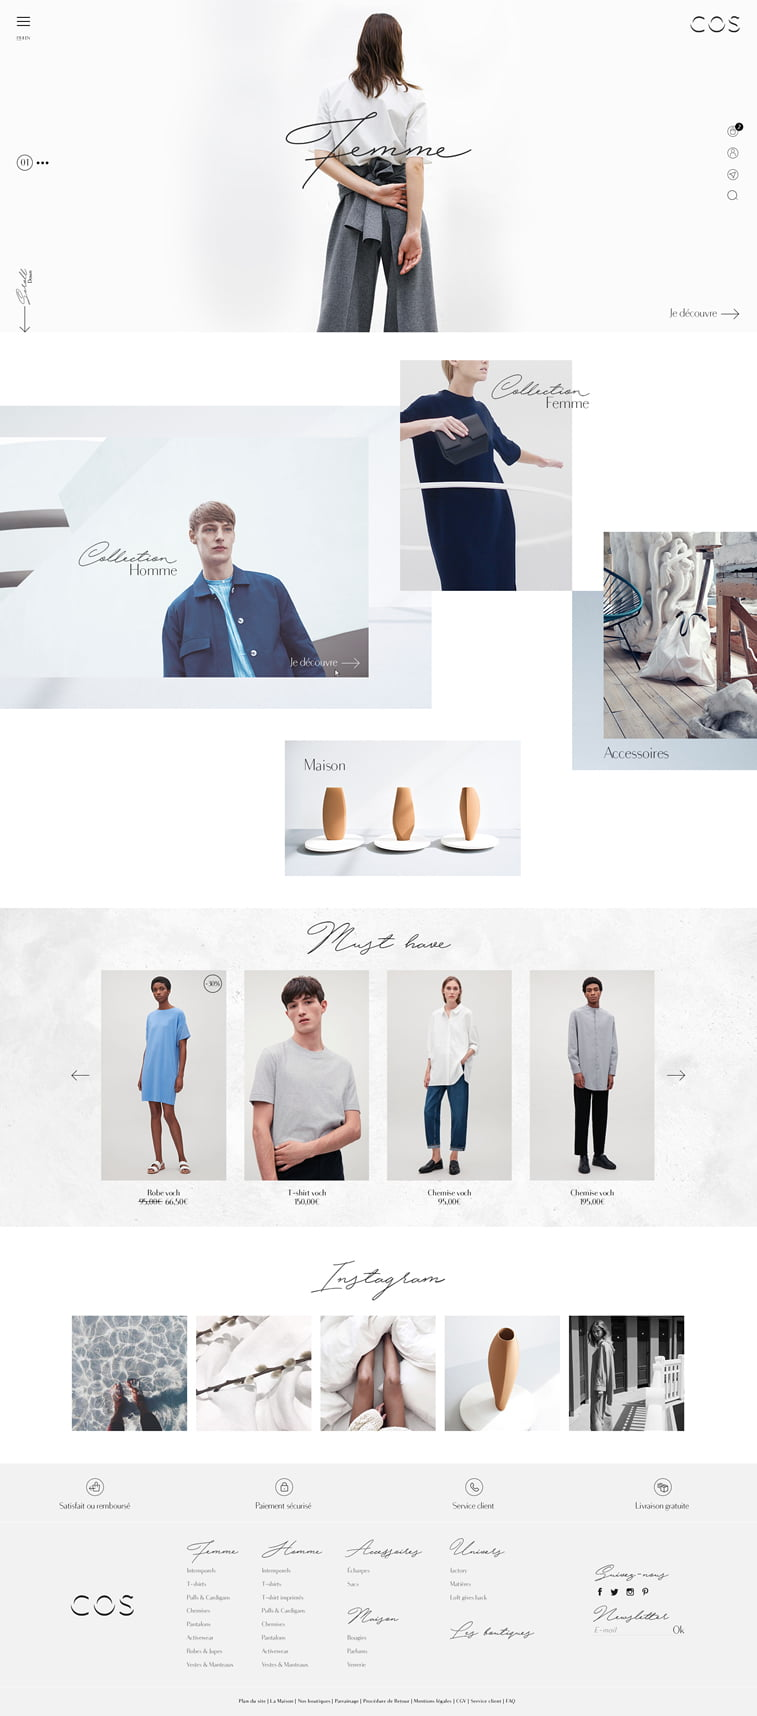 COS ecommerce website redesign concept